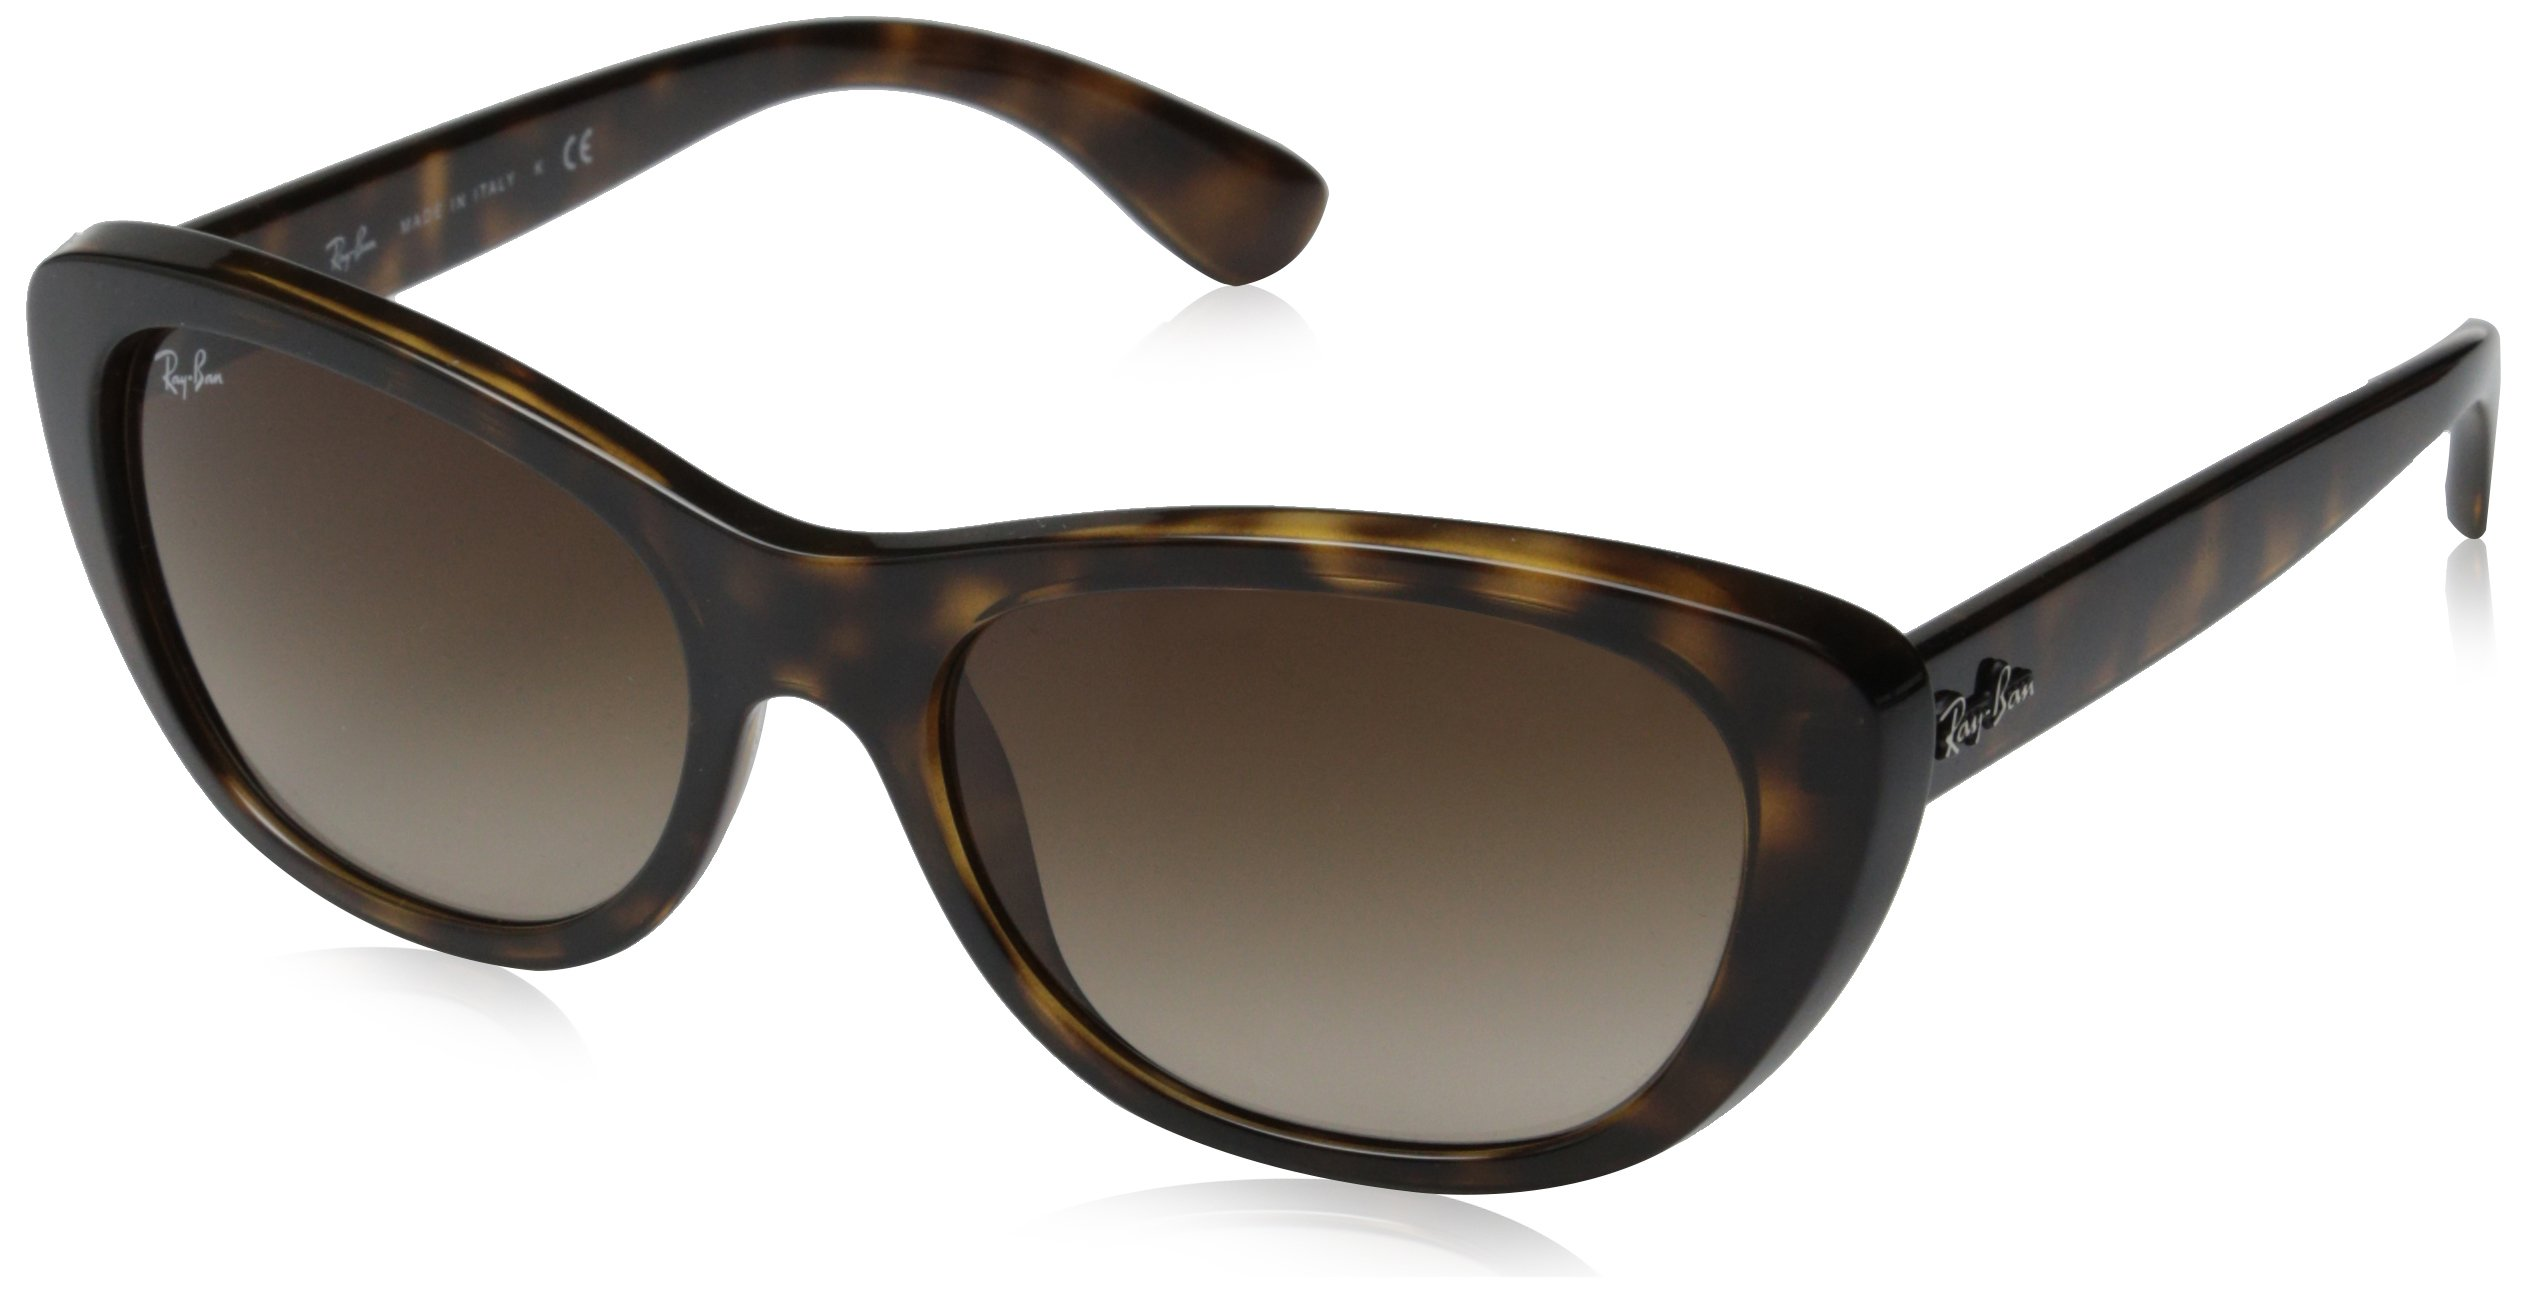 Ray-Ban INJECTED WOMAN SUNGLASS - LIGHT HAVANA Frame BROWN GRADIENT Lenses 55mm Non-Polarized by Ray-Ban